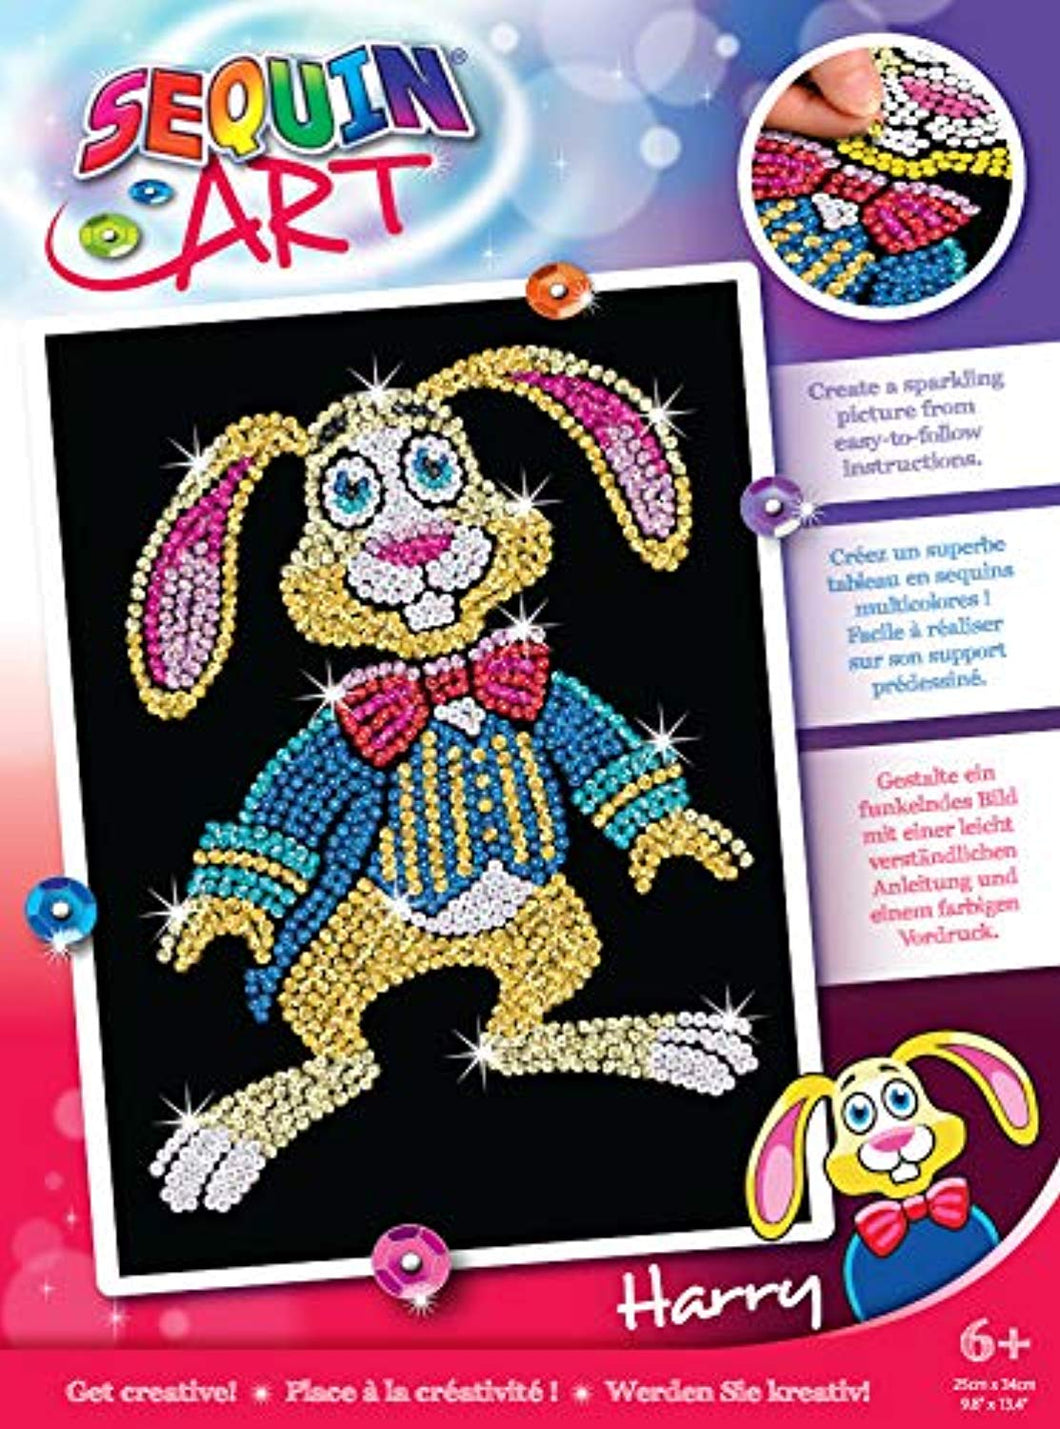 Sequin Art 1825 Harry Hare craft kit from the Red Range 28 x 37 cm - iBuy Africa